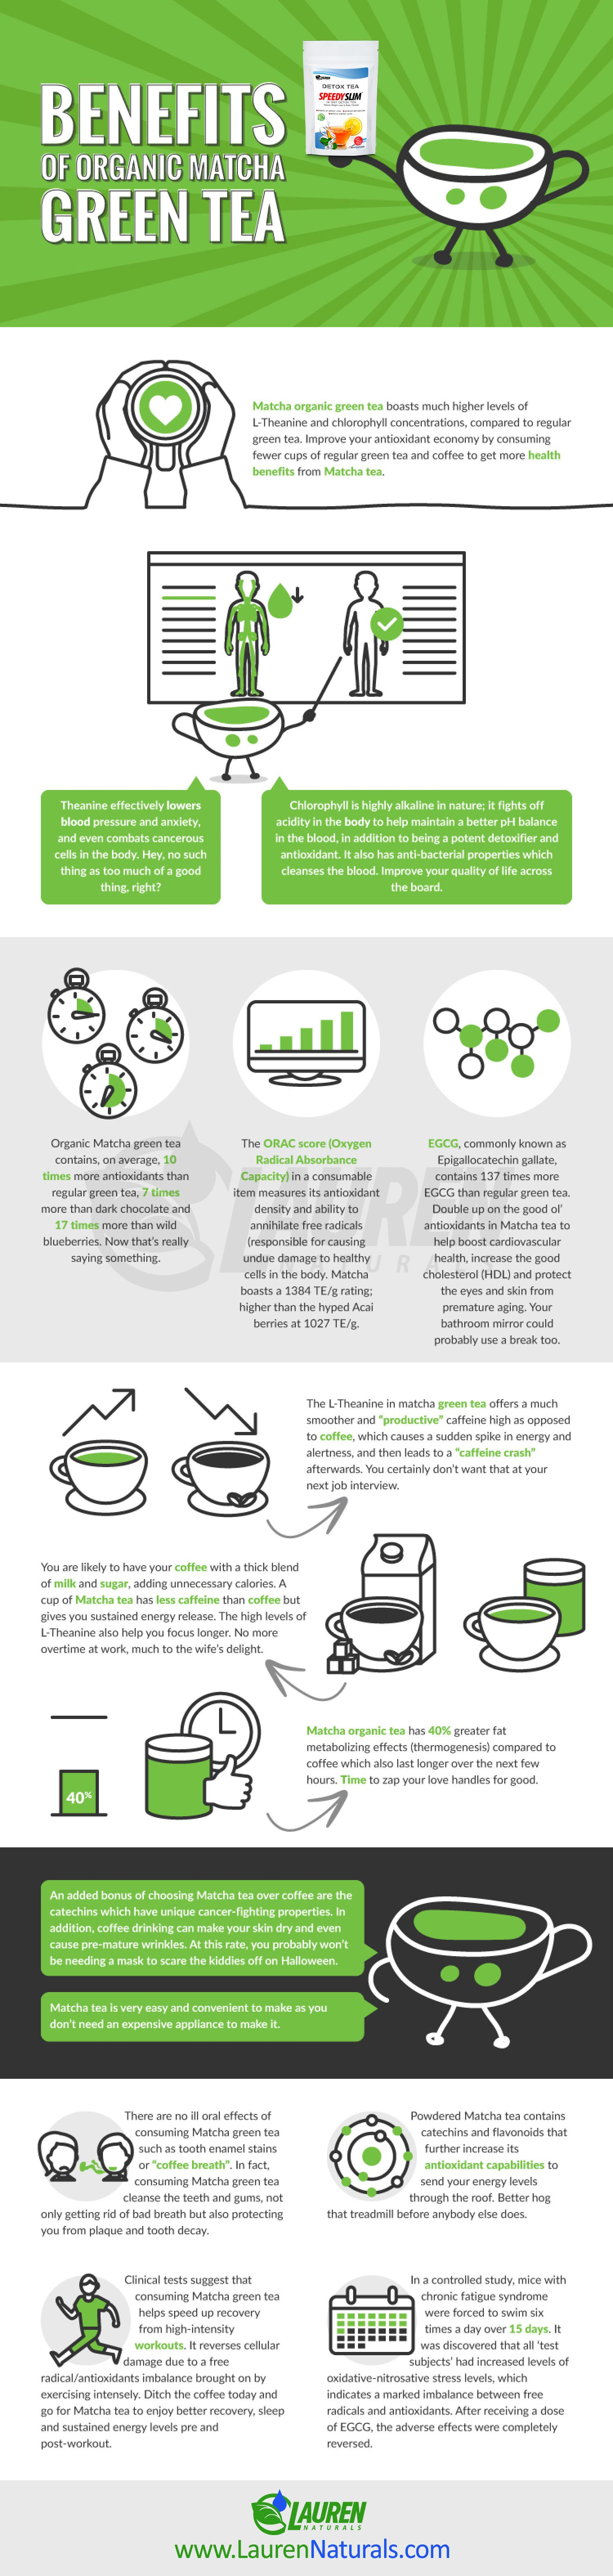 Benefits Of Organic Matcha Green Tea Green Tea Is Very Popular Both In The East And The West Due To Its Rich Compou Organic Matcha Green Tea Matcha Green Tea